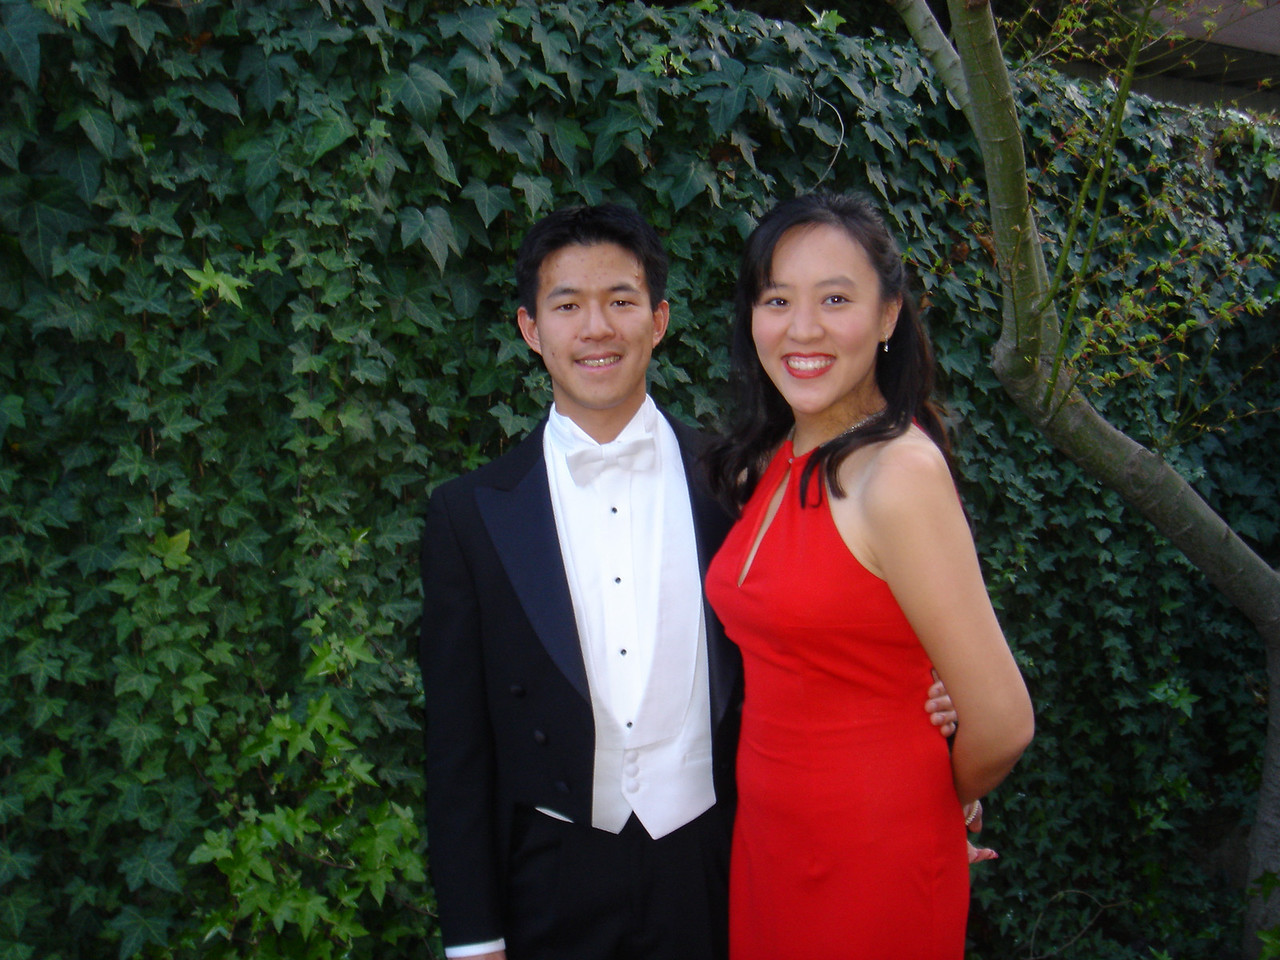 Lilly and I about to head off to the ball.  Isn't she gorgeous in that red dress?